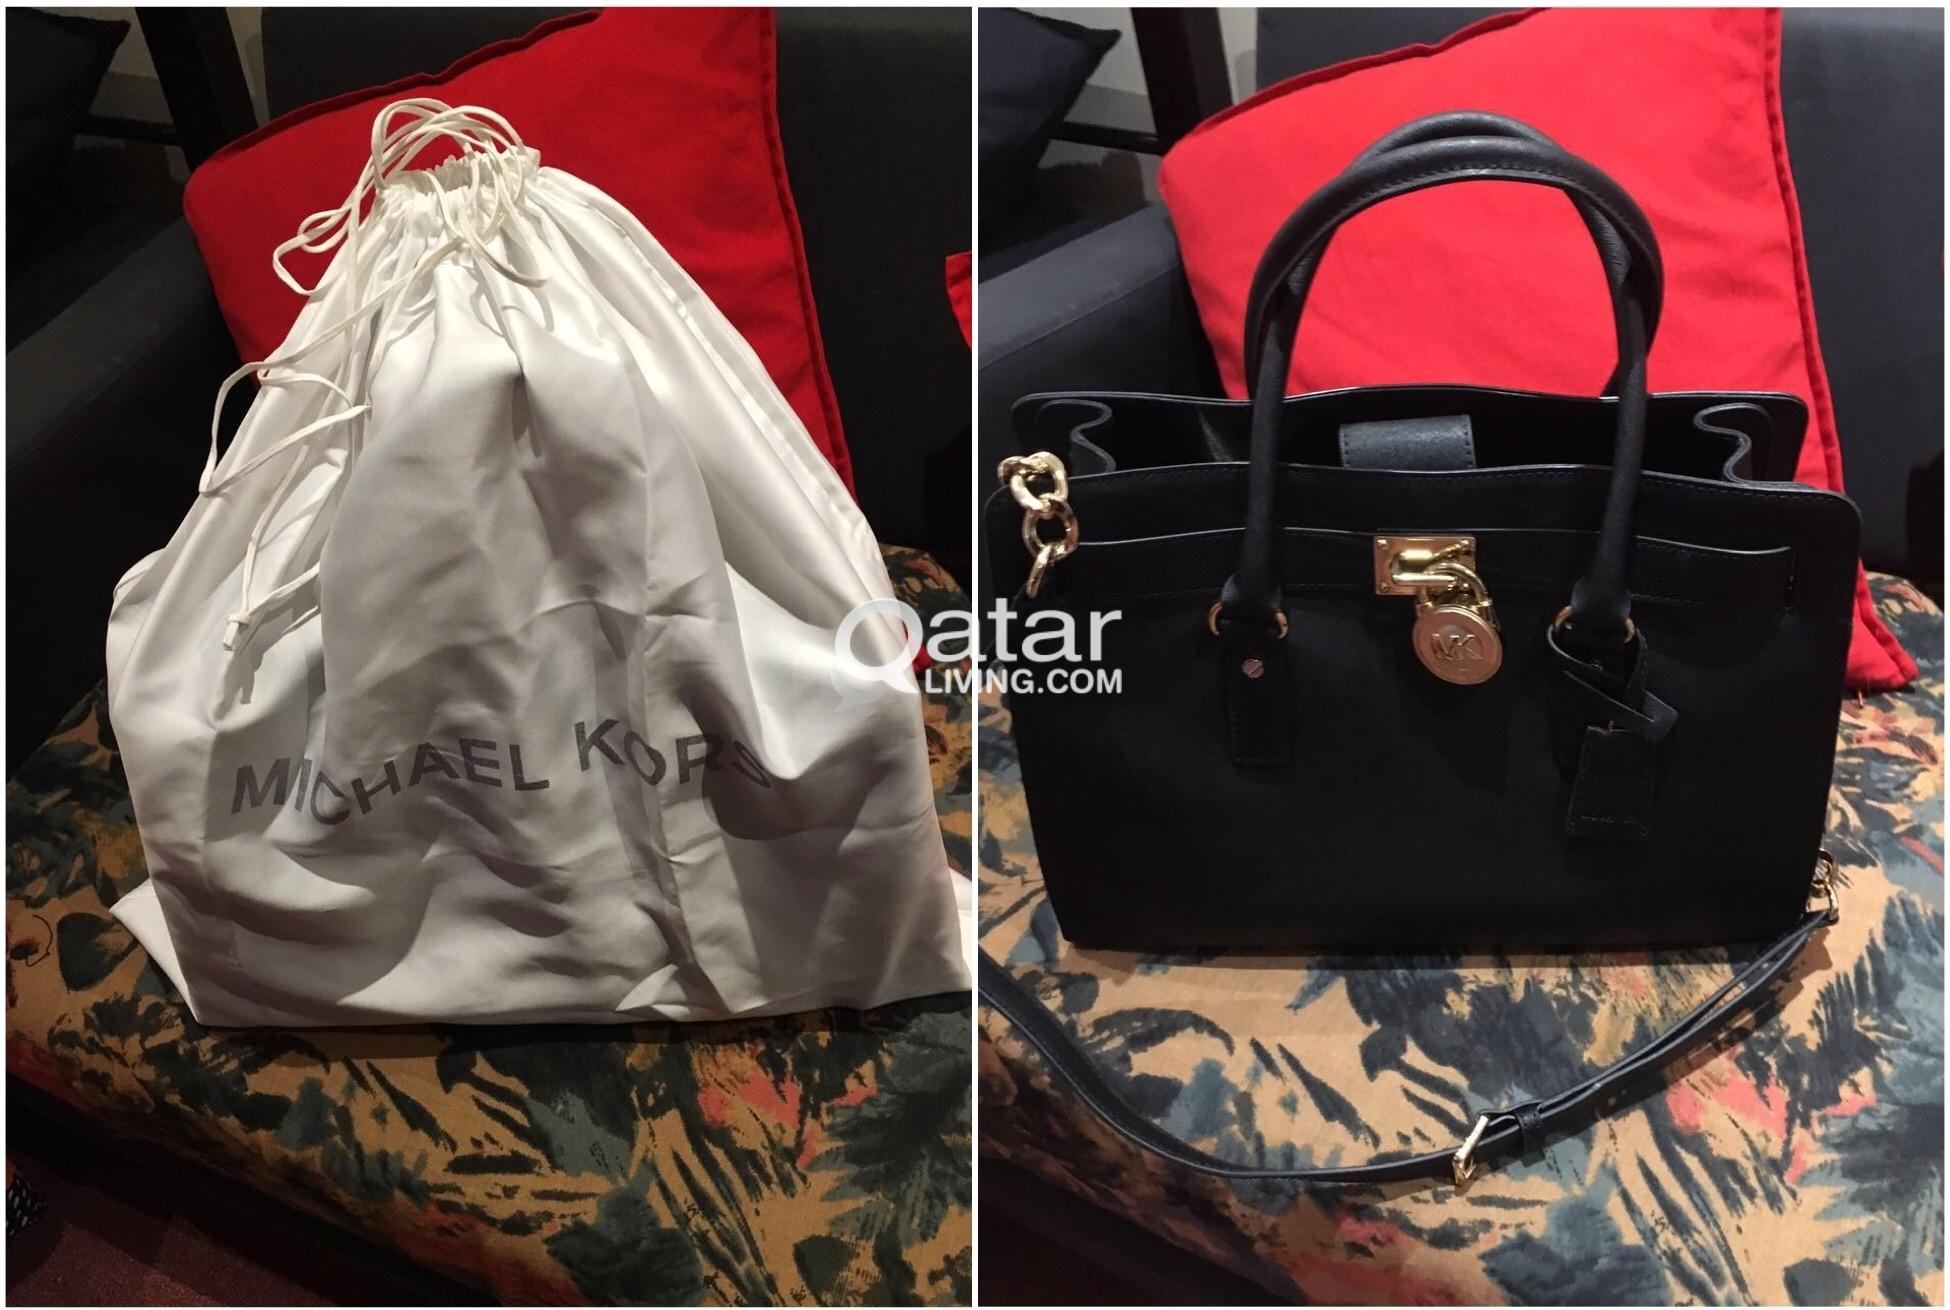 299e2192a8 title · title · title. Information. Two months old MK bag ...